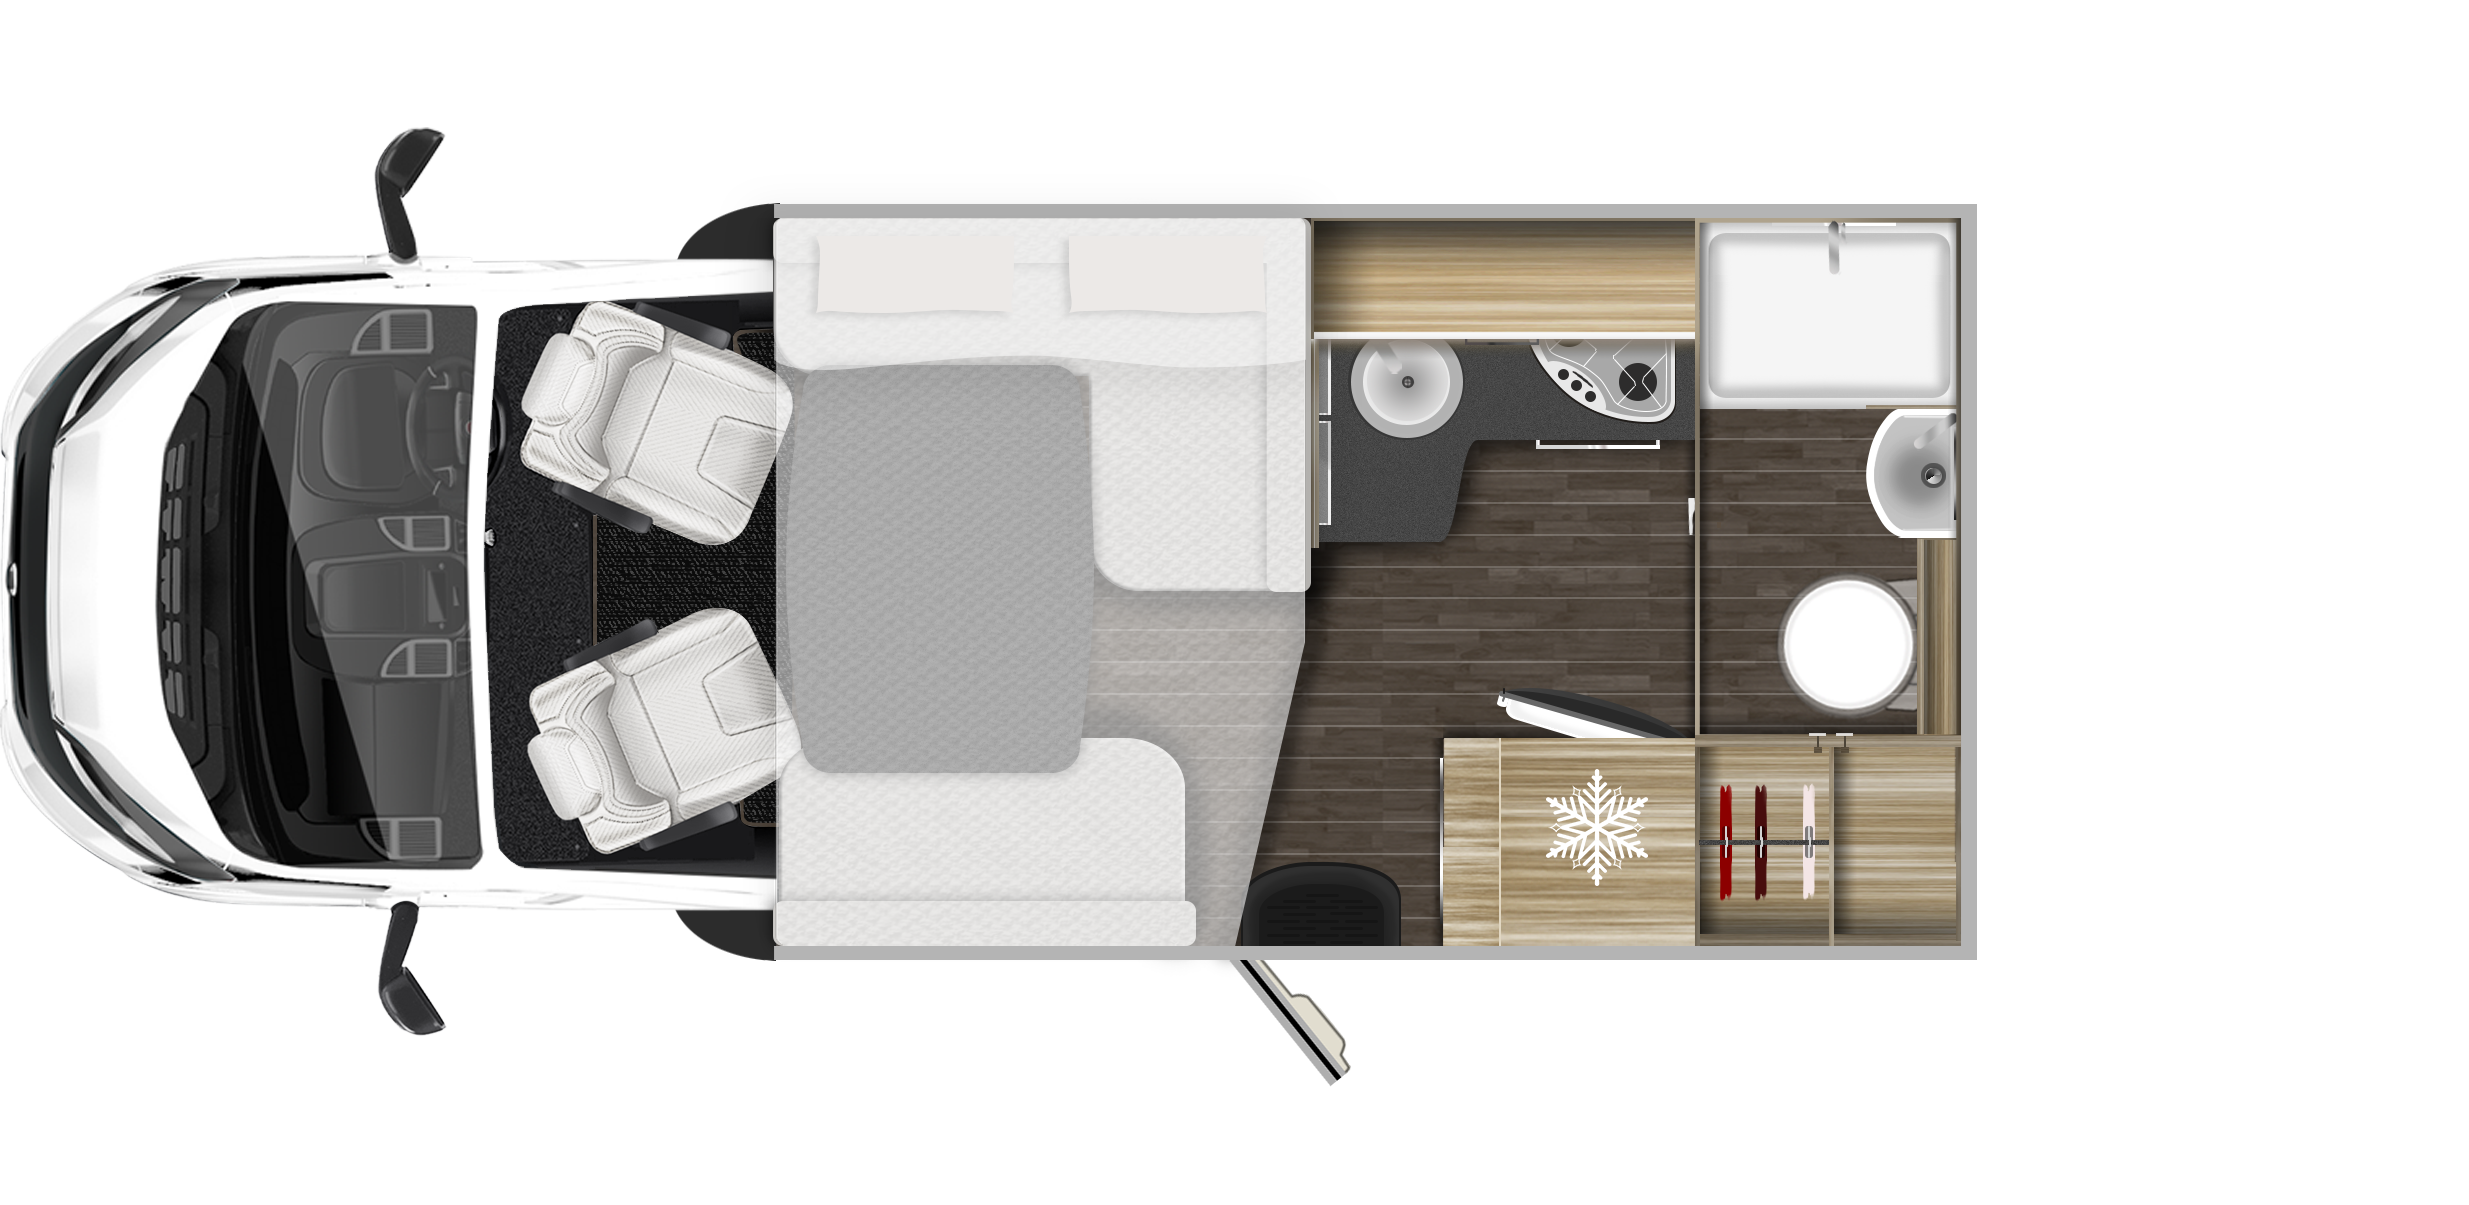 2020 Roller Team T-Line 590 (Automatic) New Motorhome layout